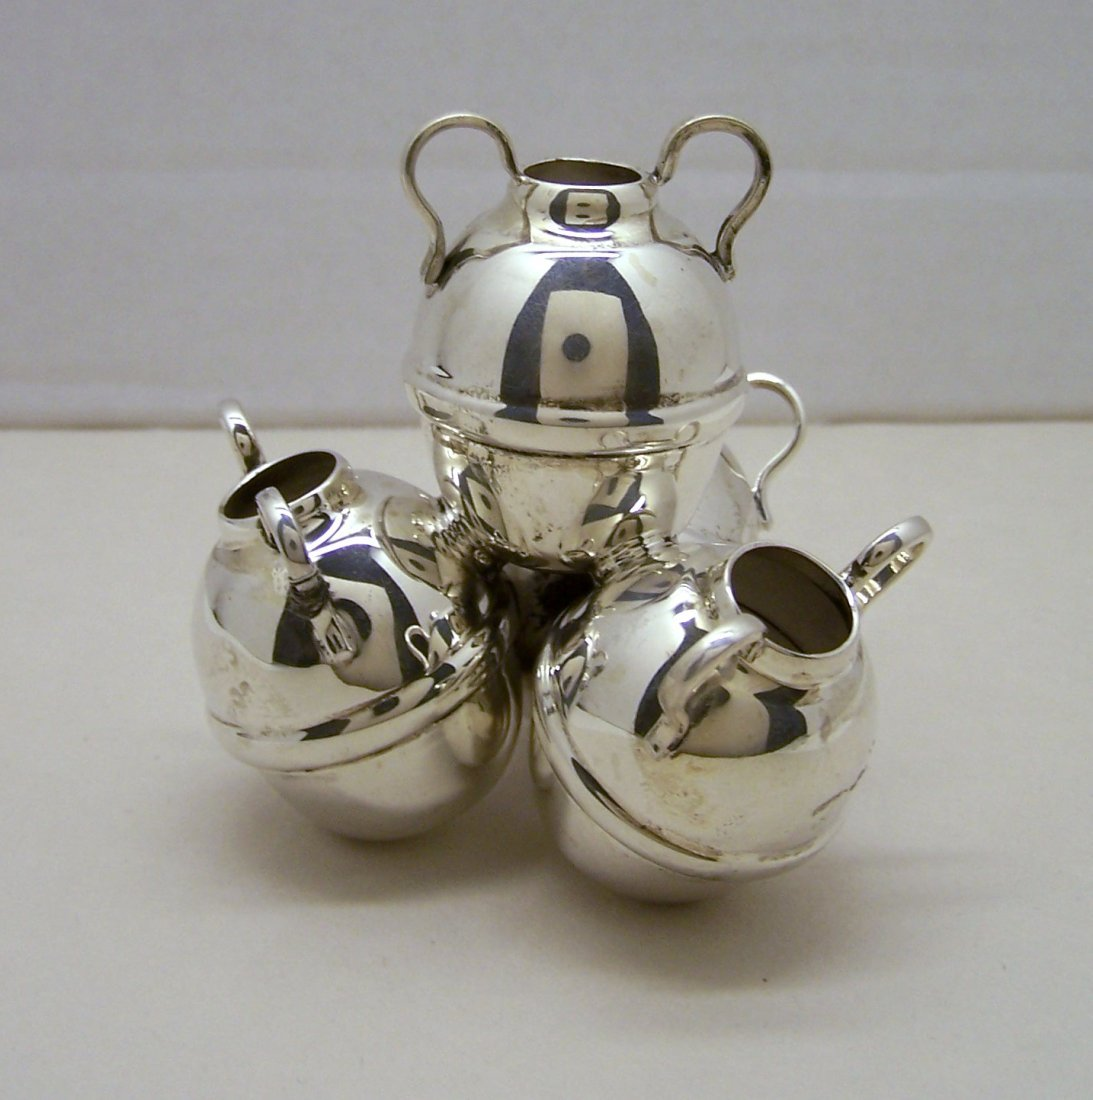 SAAD OF EGYPT 900 silver antique water jug sculpture